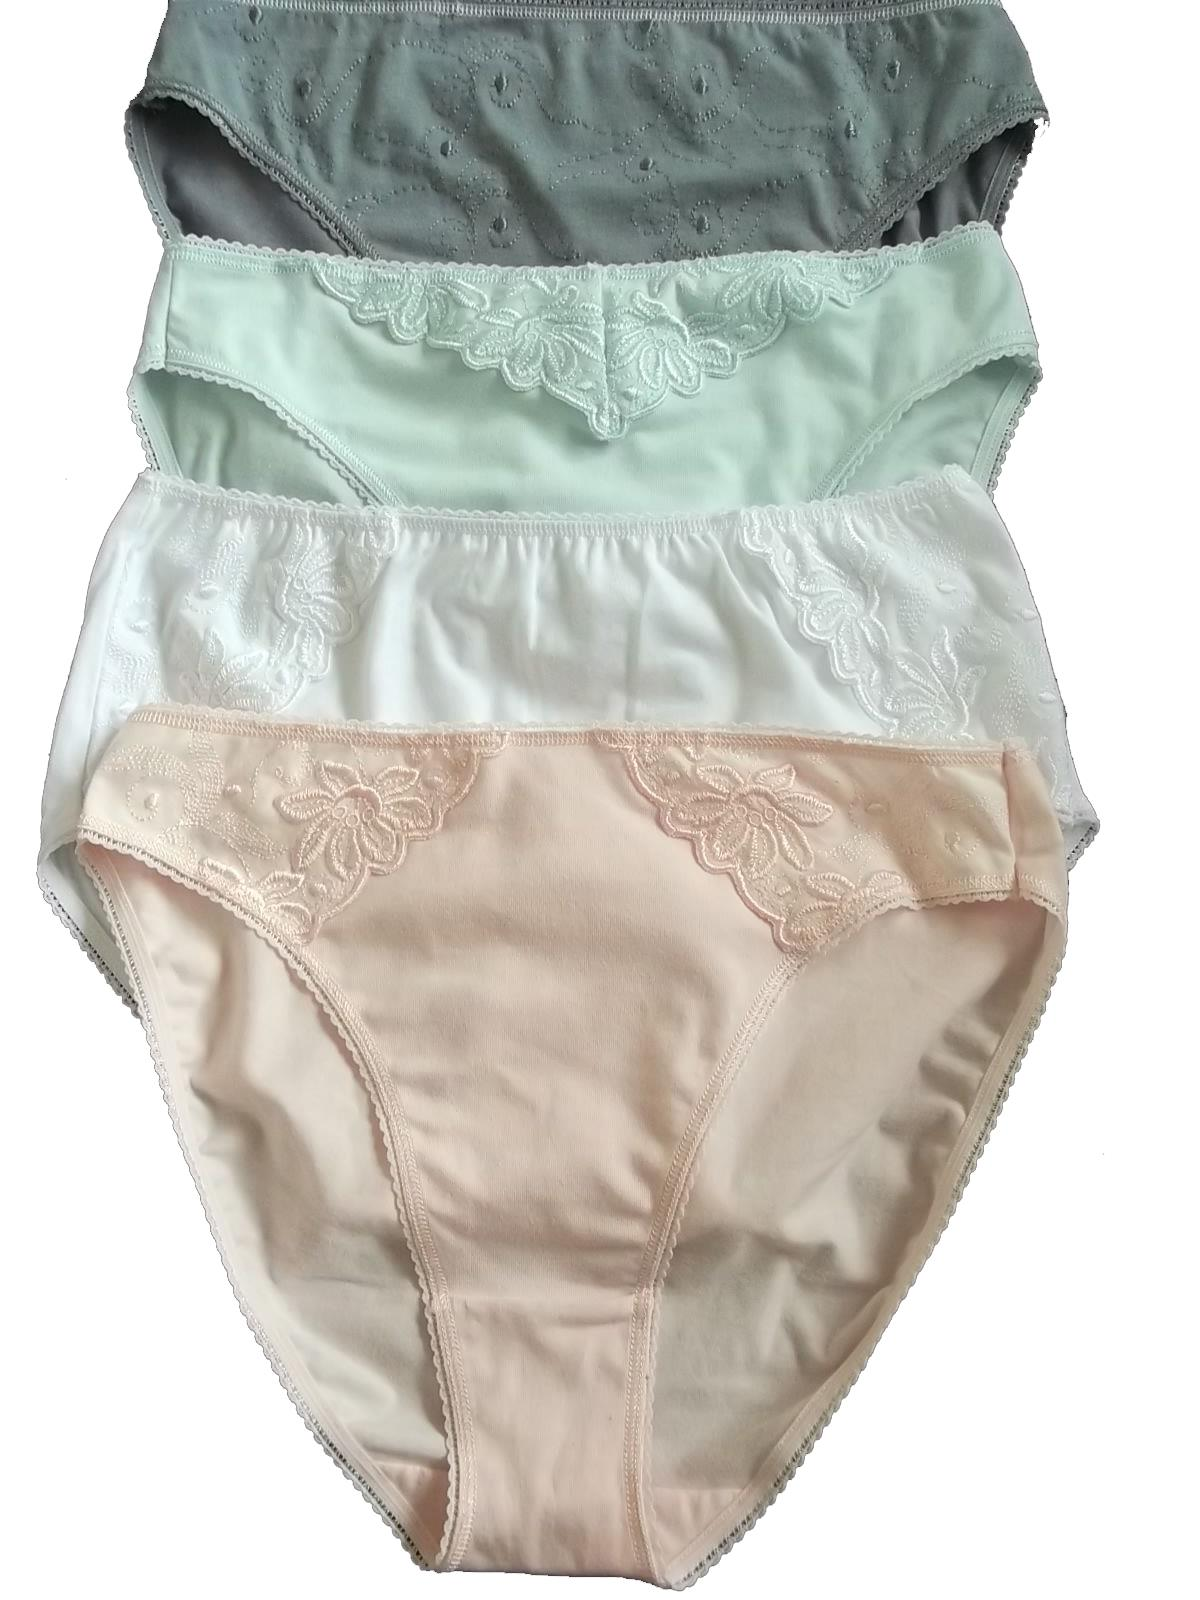 size 10 to 18 Ex M/&S Jacquard Lace Trim High Leg Knickers